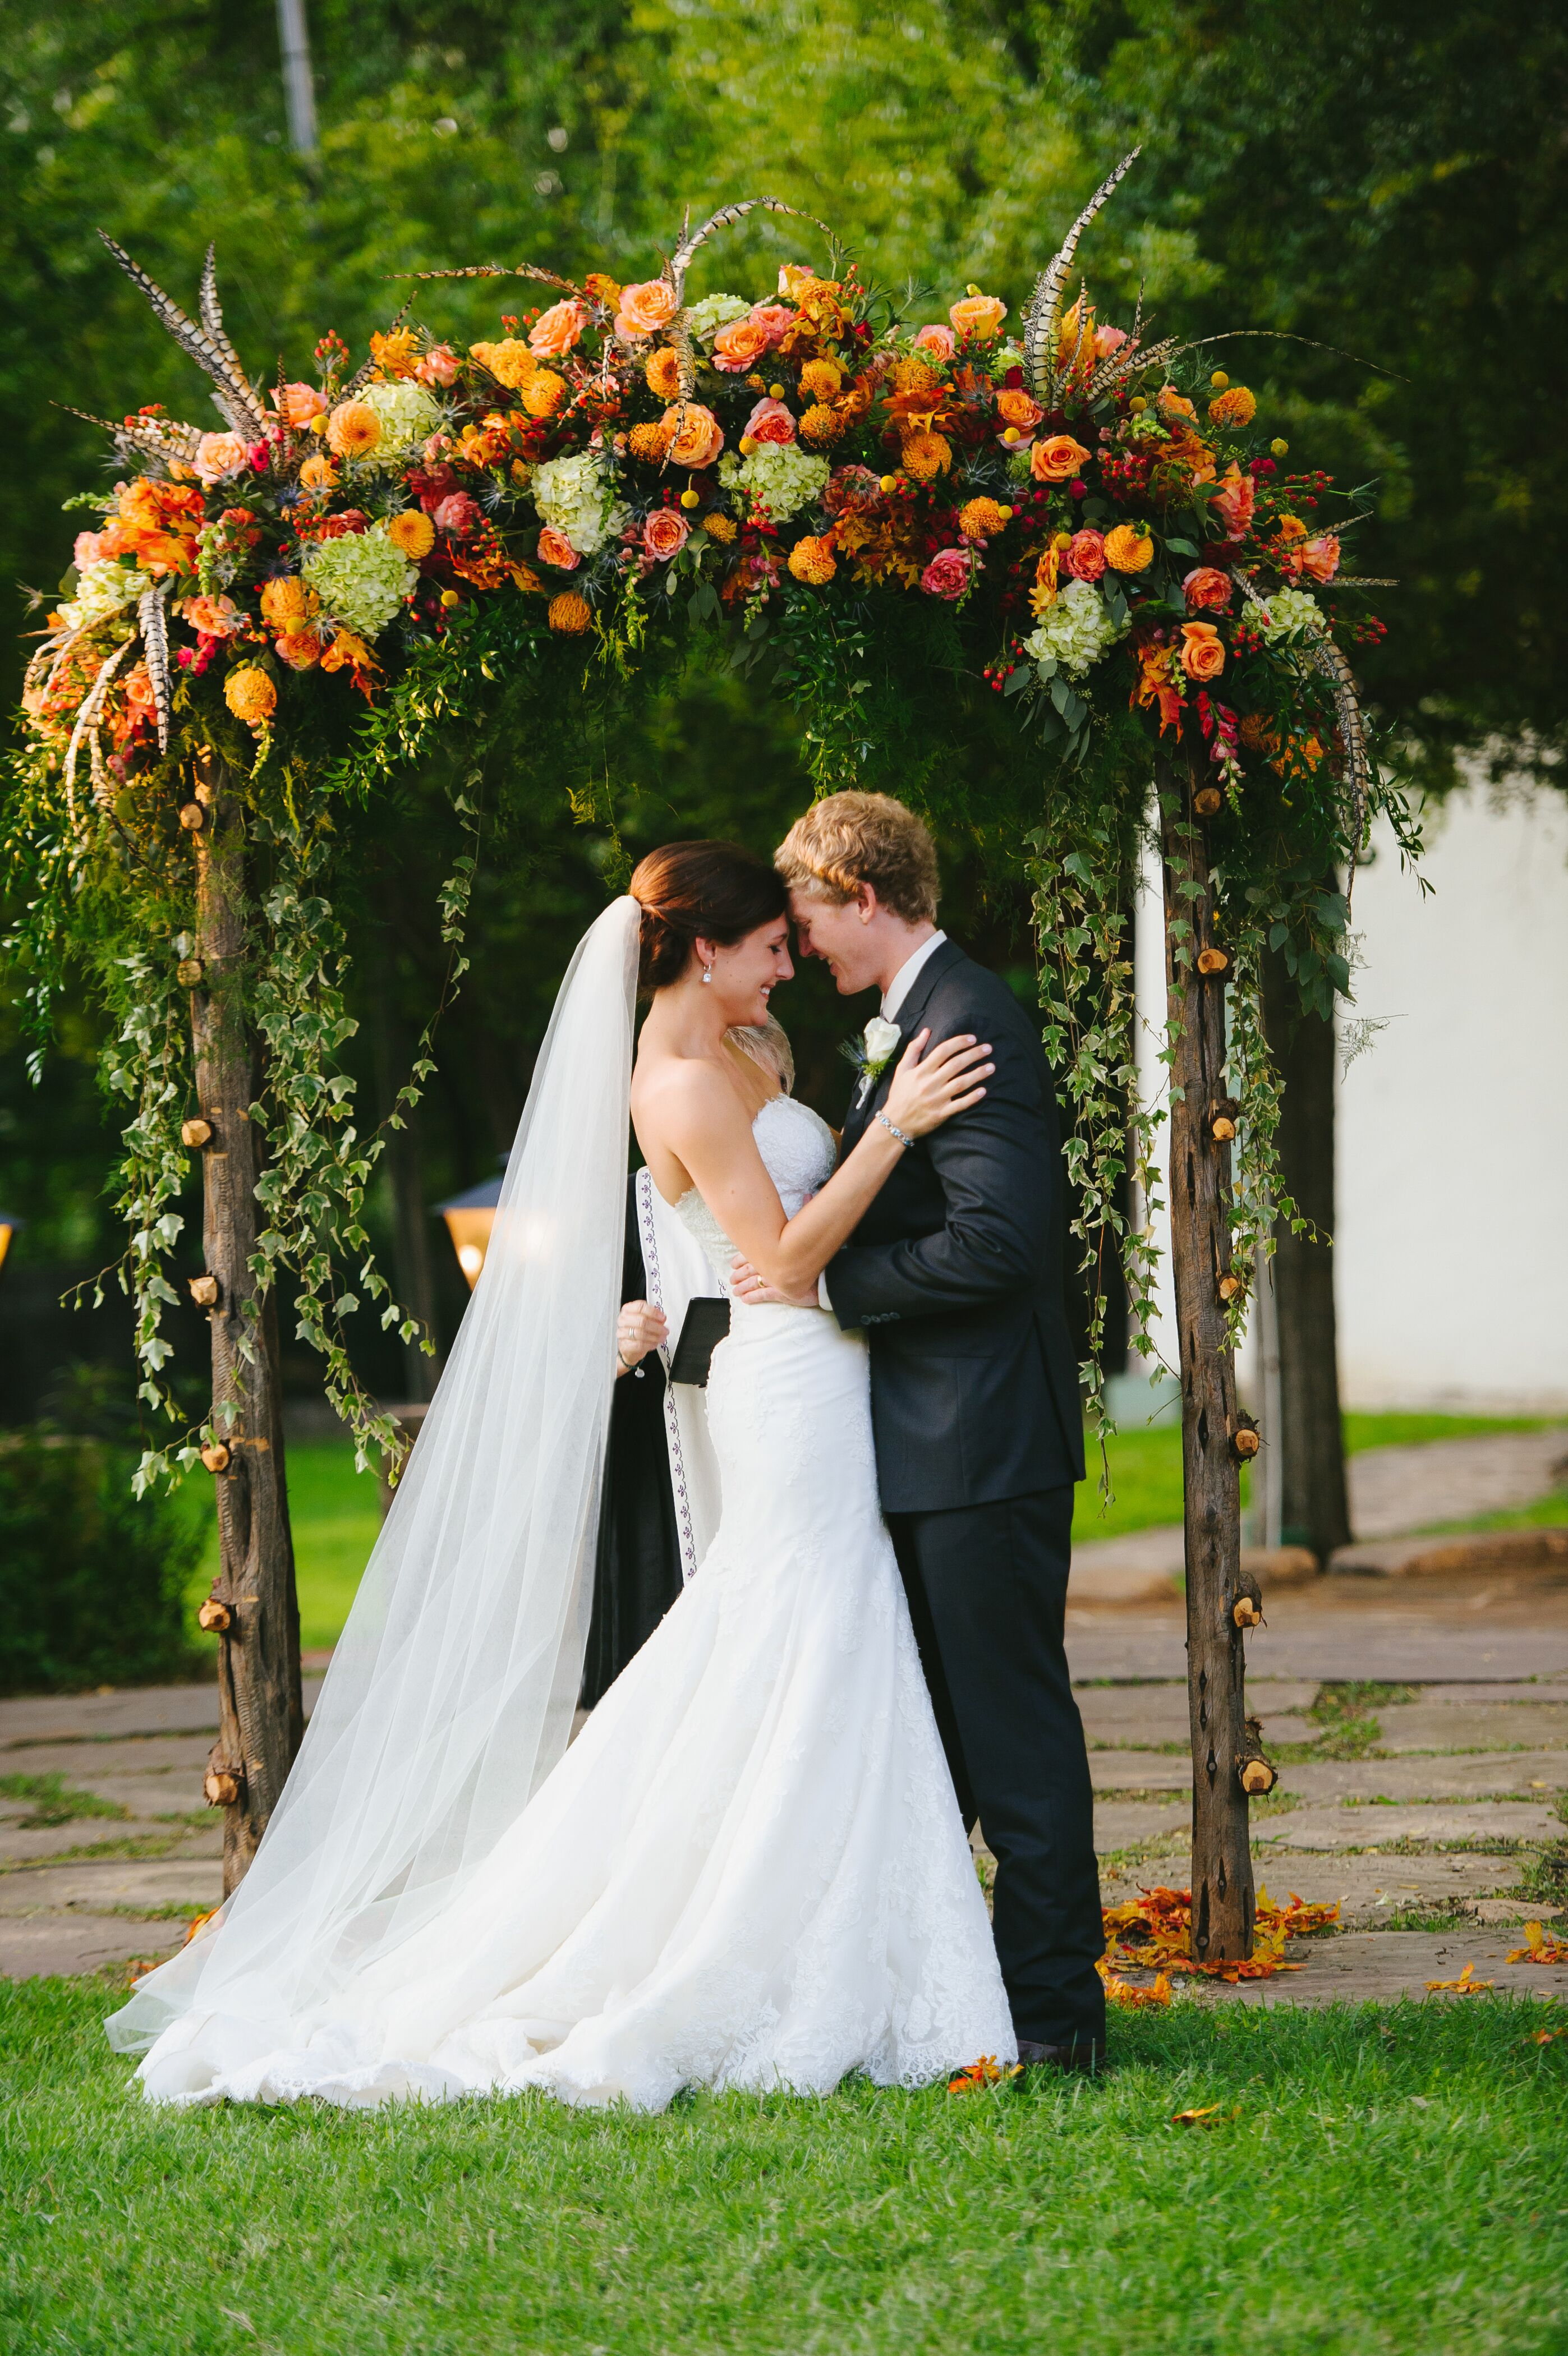 Whimsical Fall Inspired Natural Wedding Arch